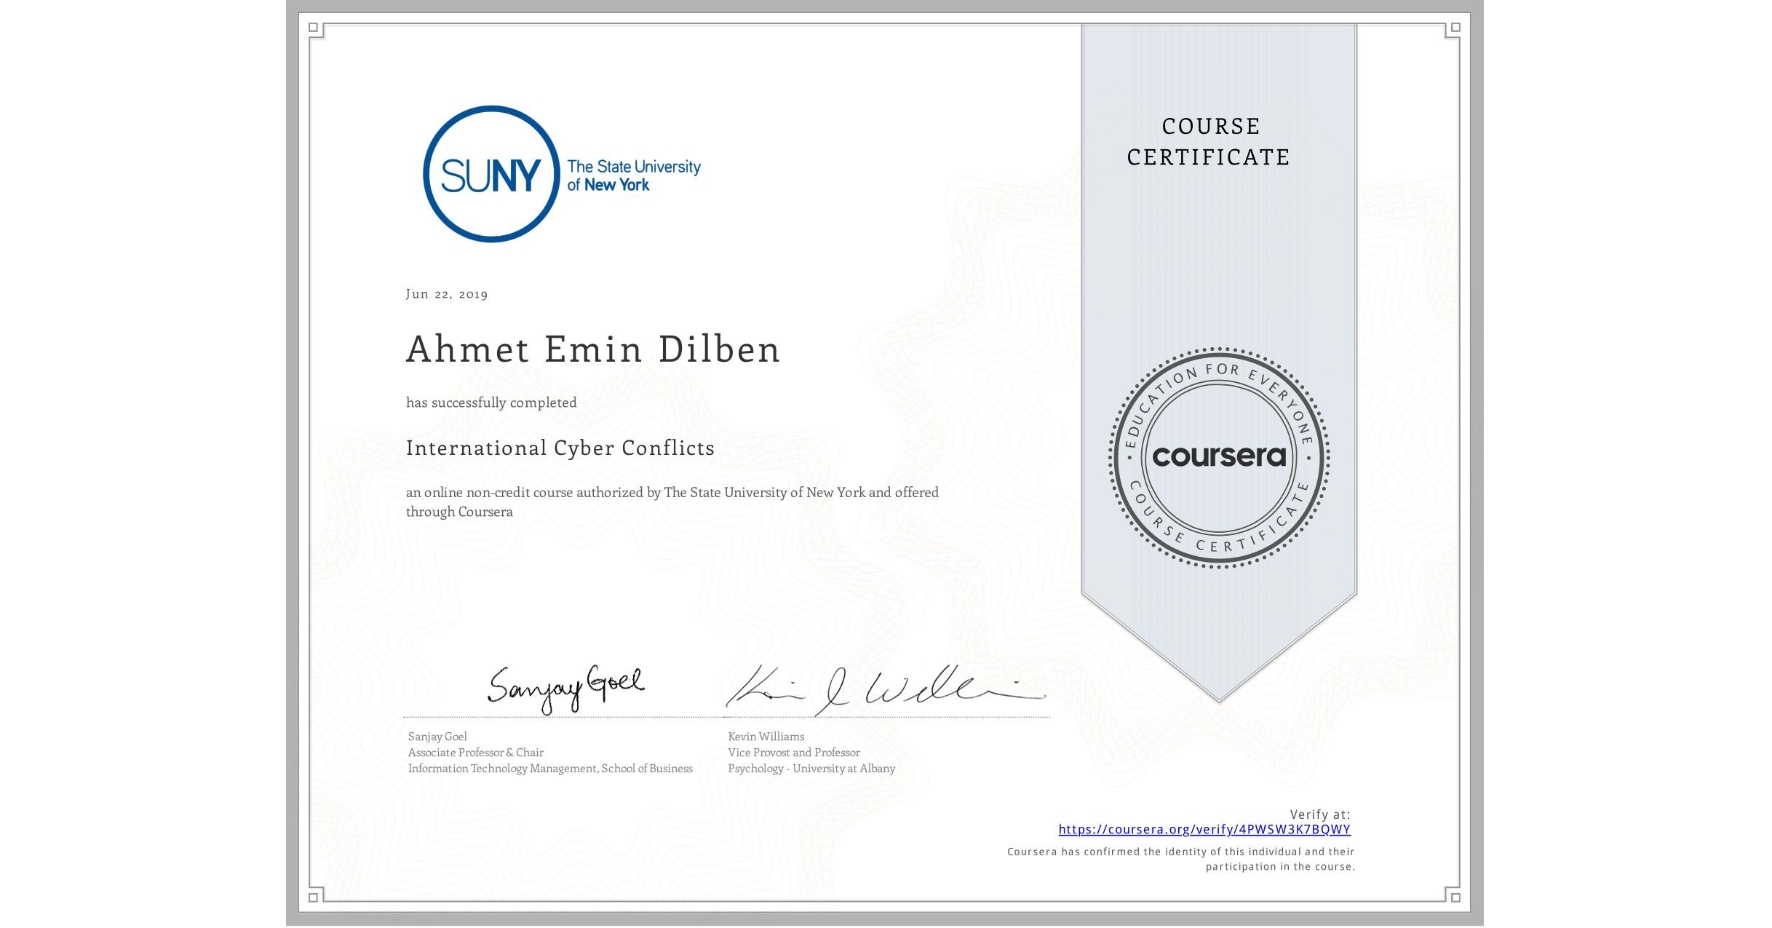 View certificate for Ahmet Emin Dilben, International Cyber Conflicts, an online non-credit course authorized by The State University of New York and offered through Coursera